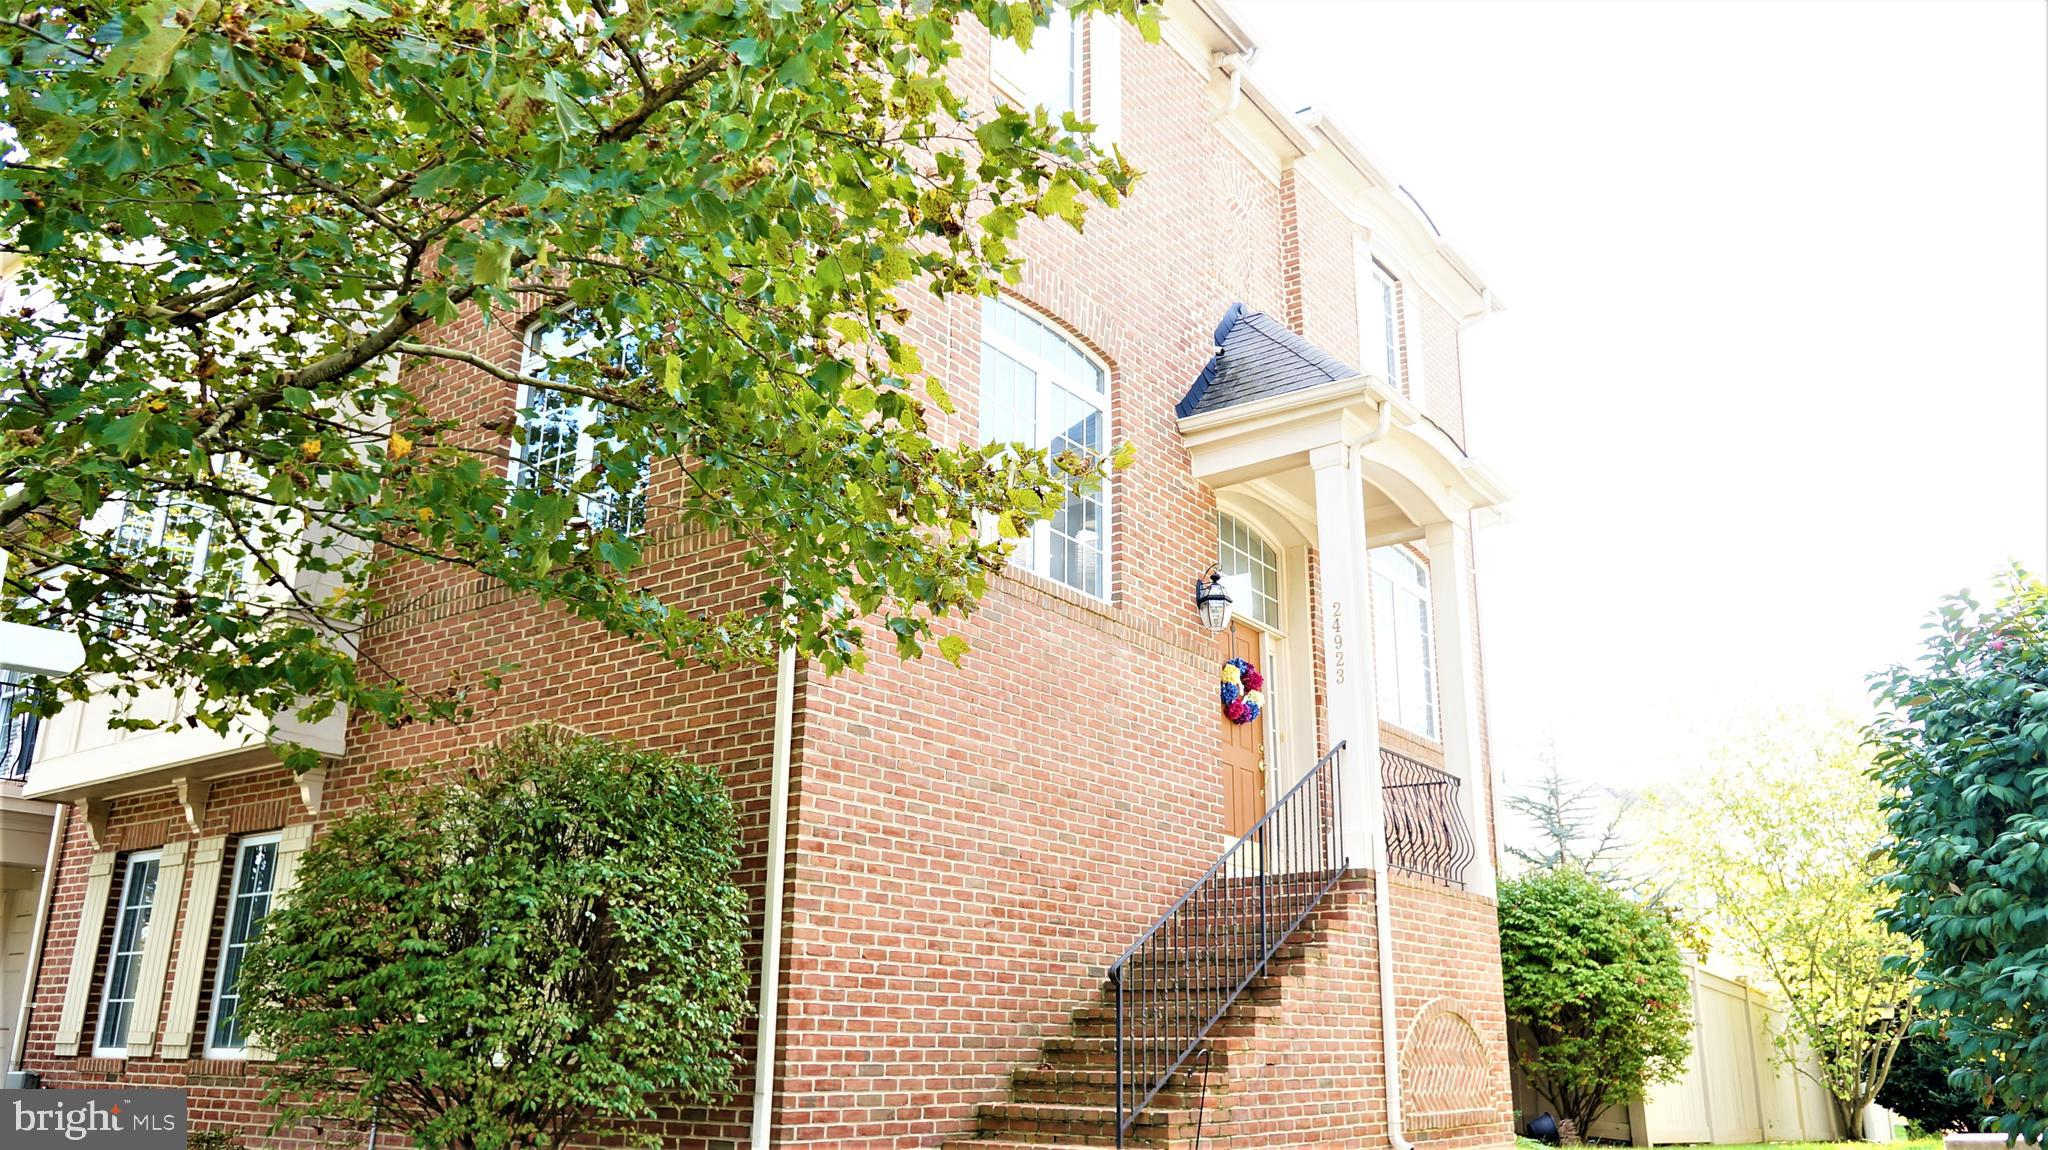 This is a Stunning Brick Front End Unit Townhome with curved Stone Walls + Stone Patio in Private Fe